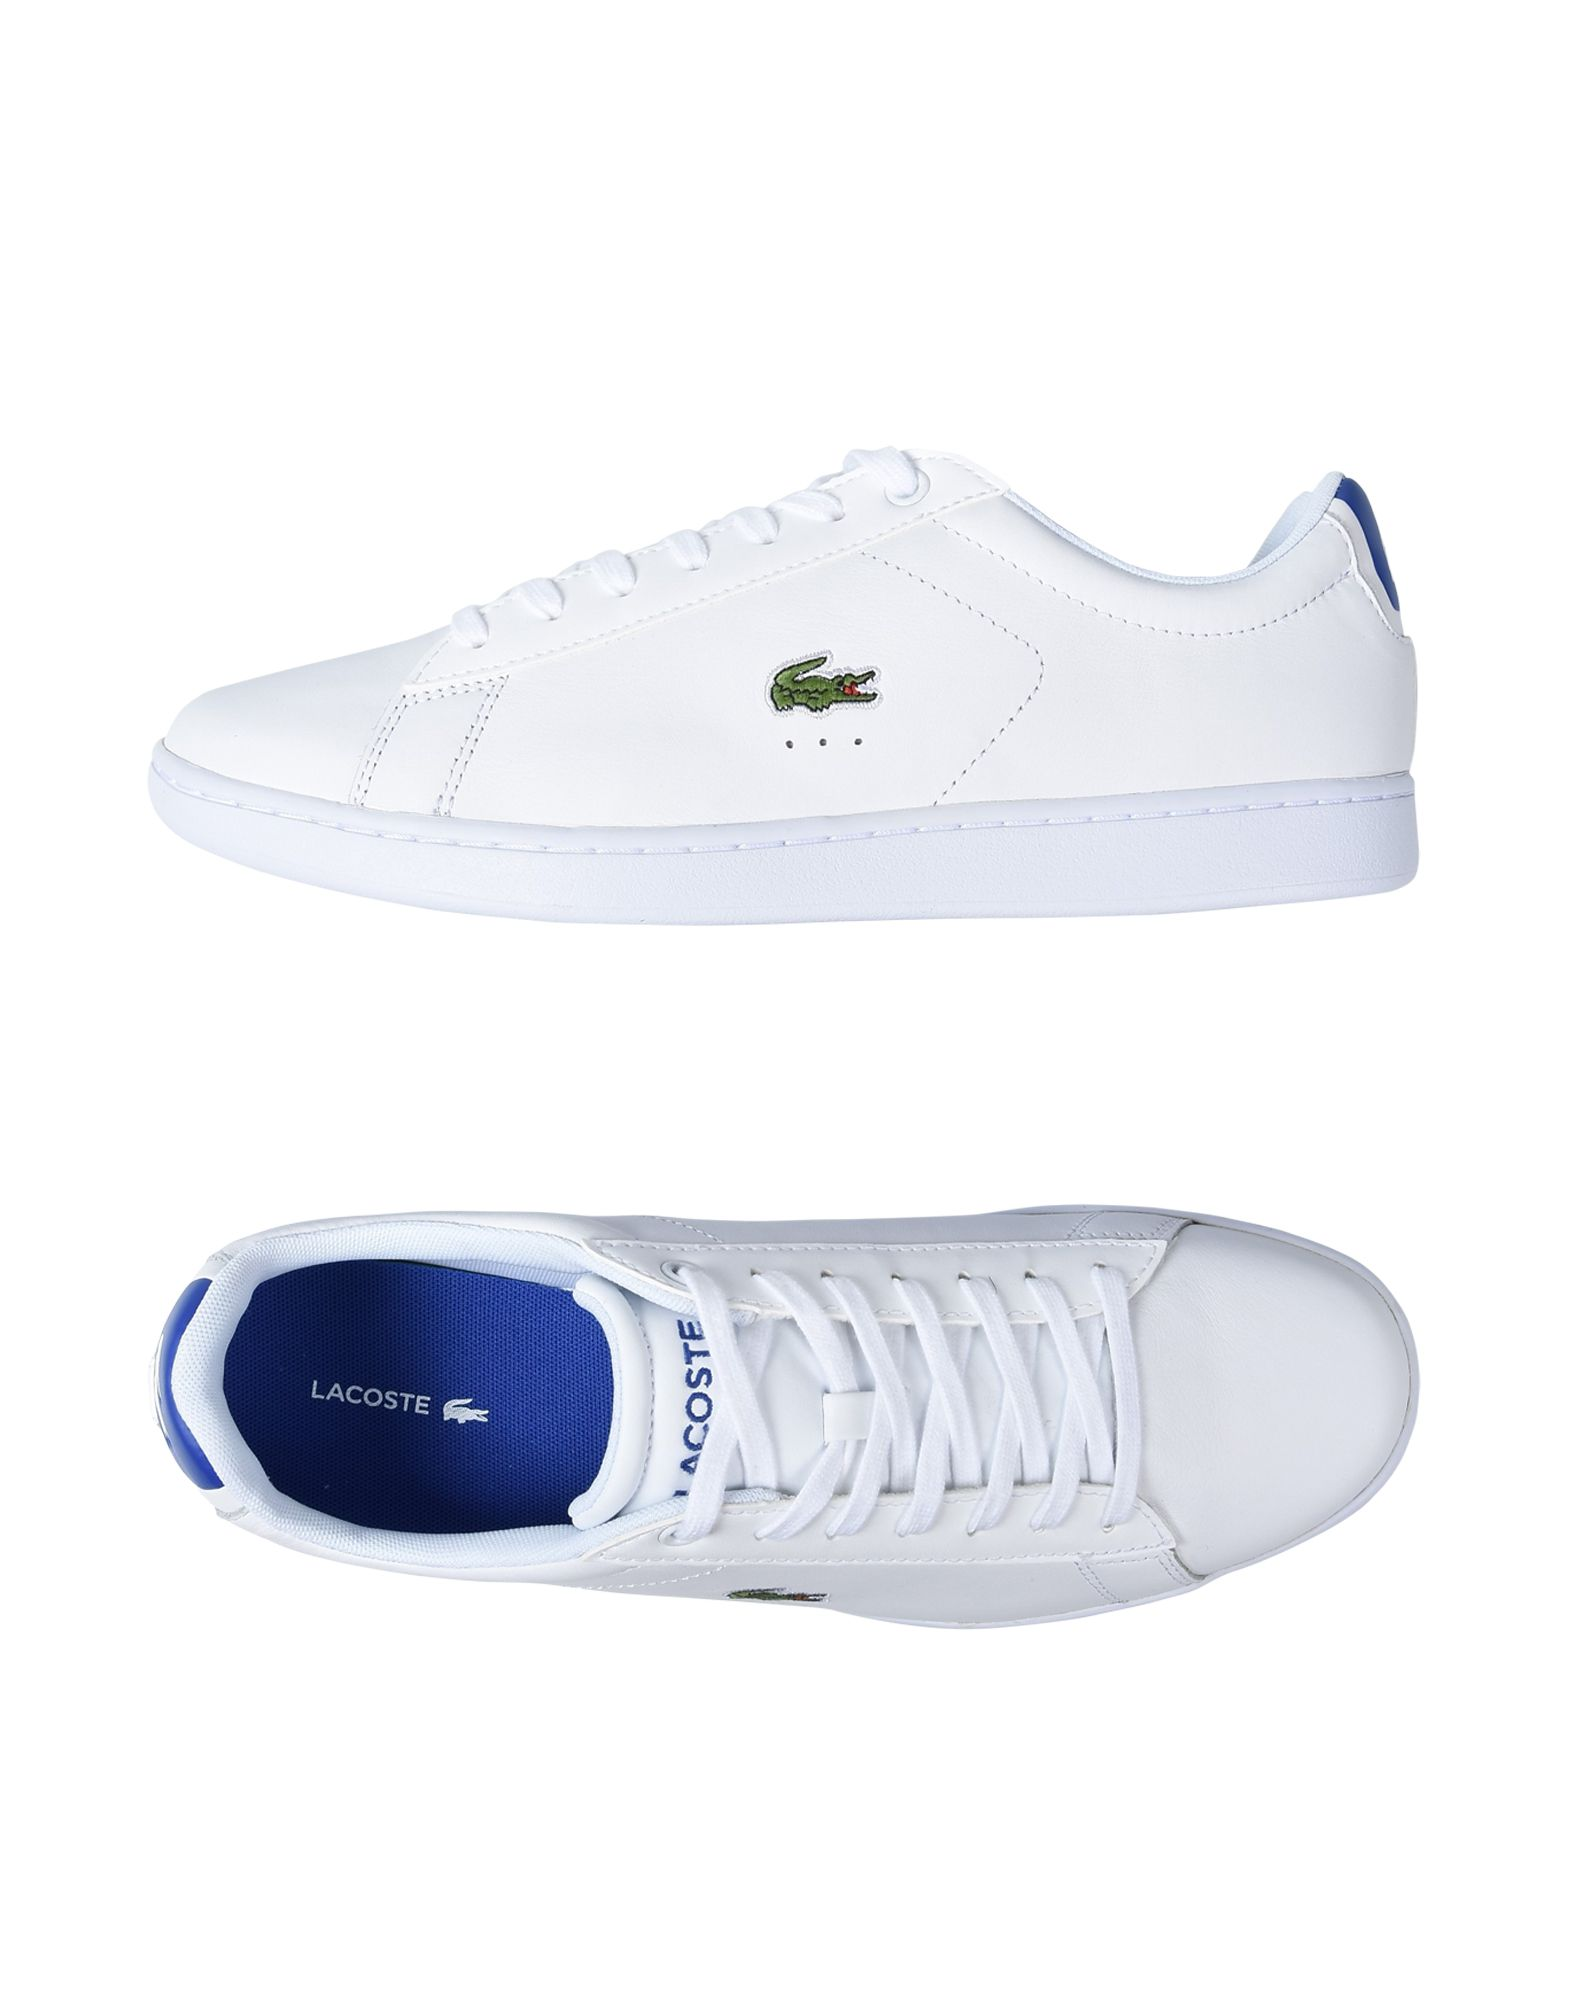 Sneakers Lacoste Carnaby Evo S216 2 - Uomo - 11210994FI